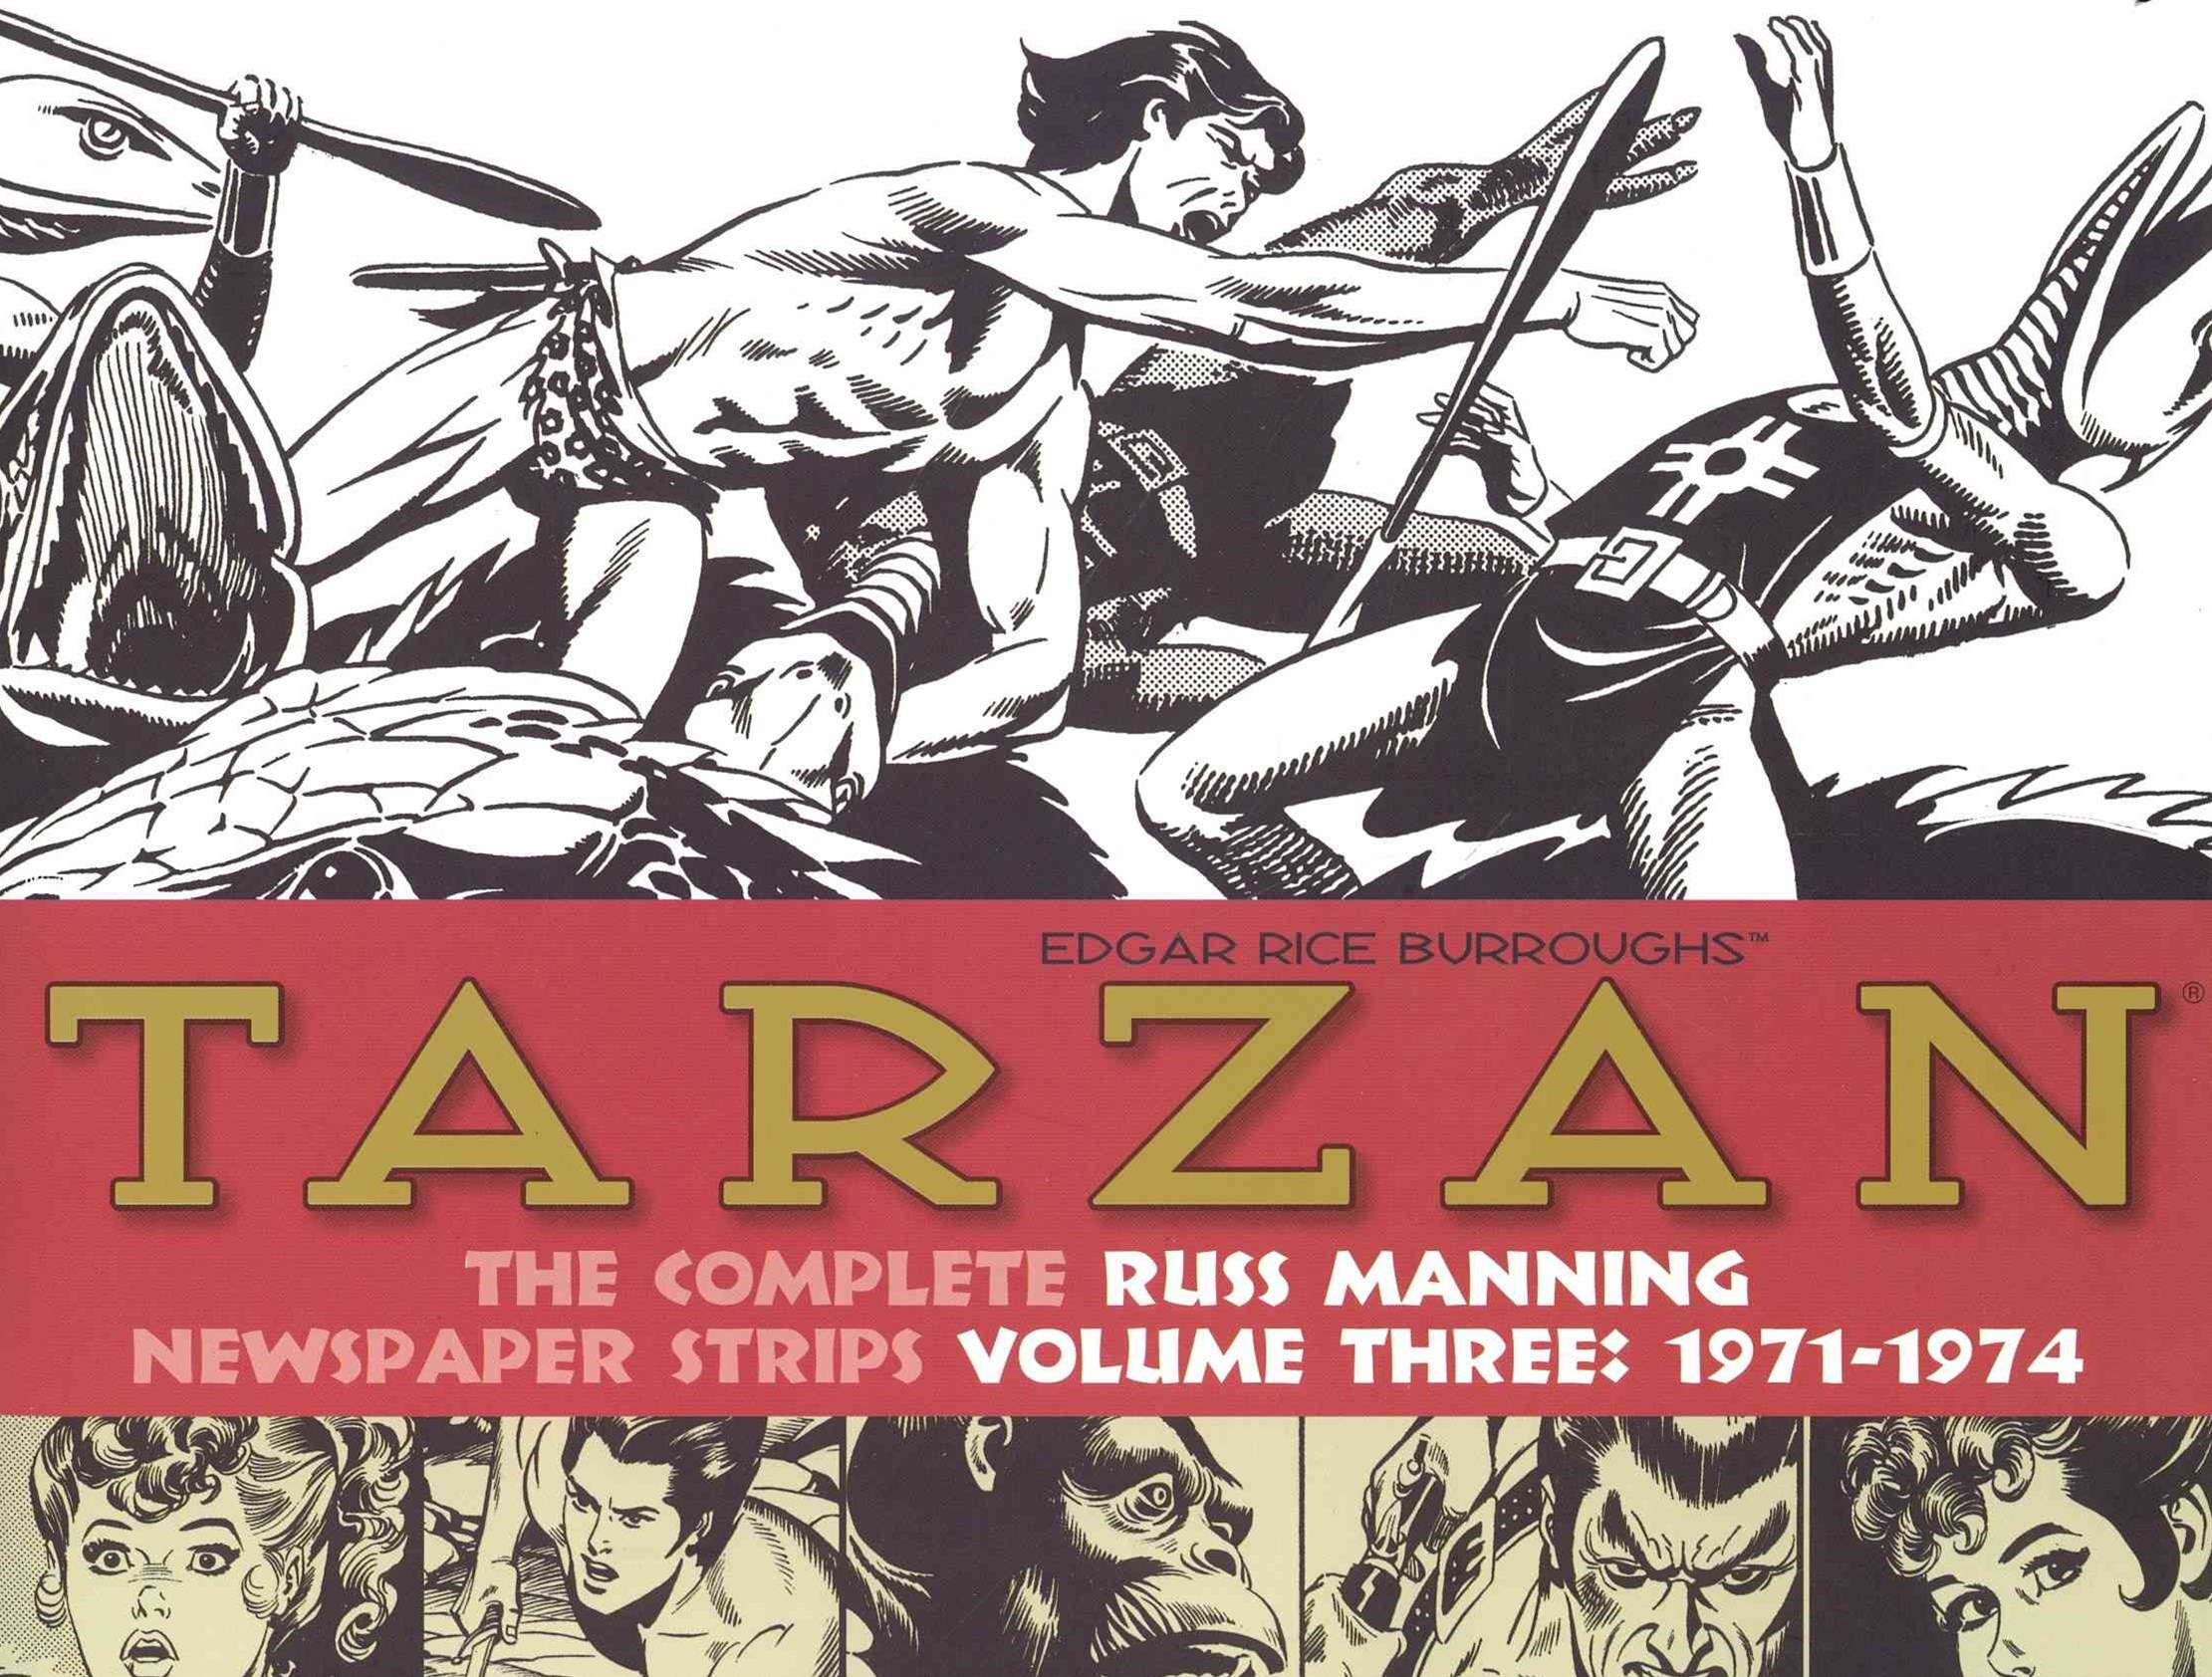 Tarzan The Complete Russ Manning Newspaper Strips Volume 3 (1971-1974)